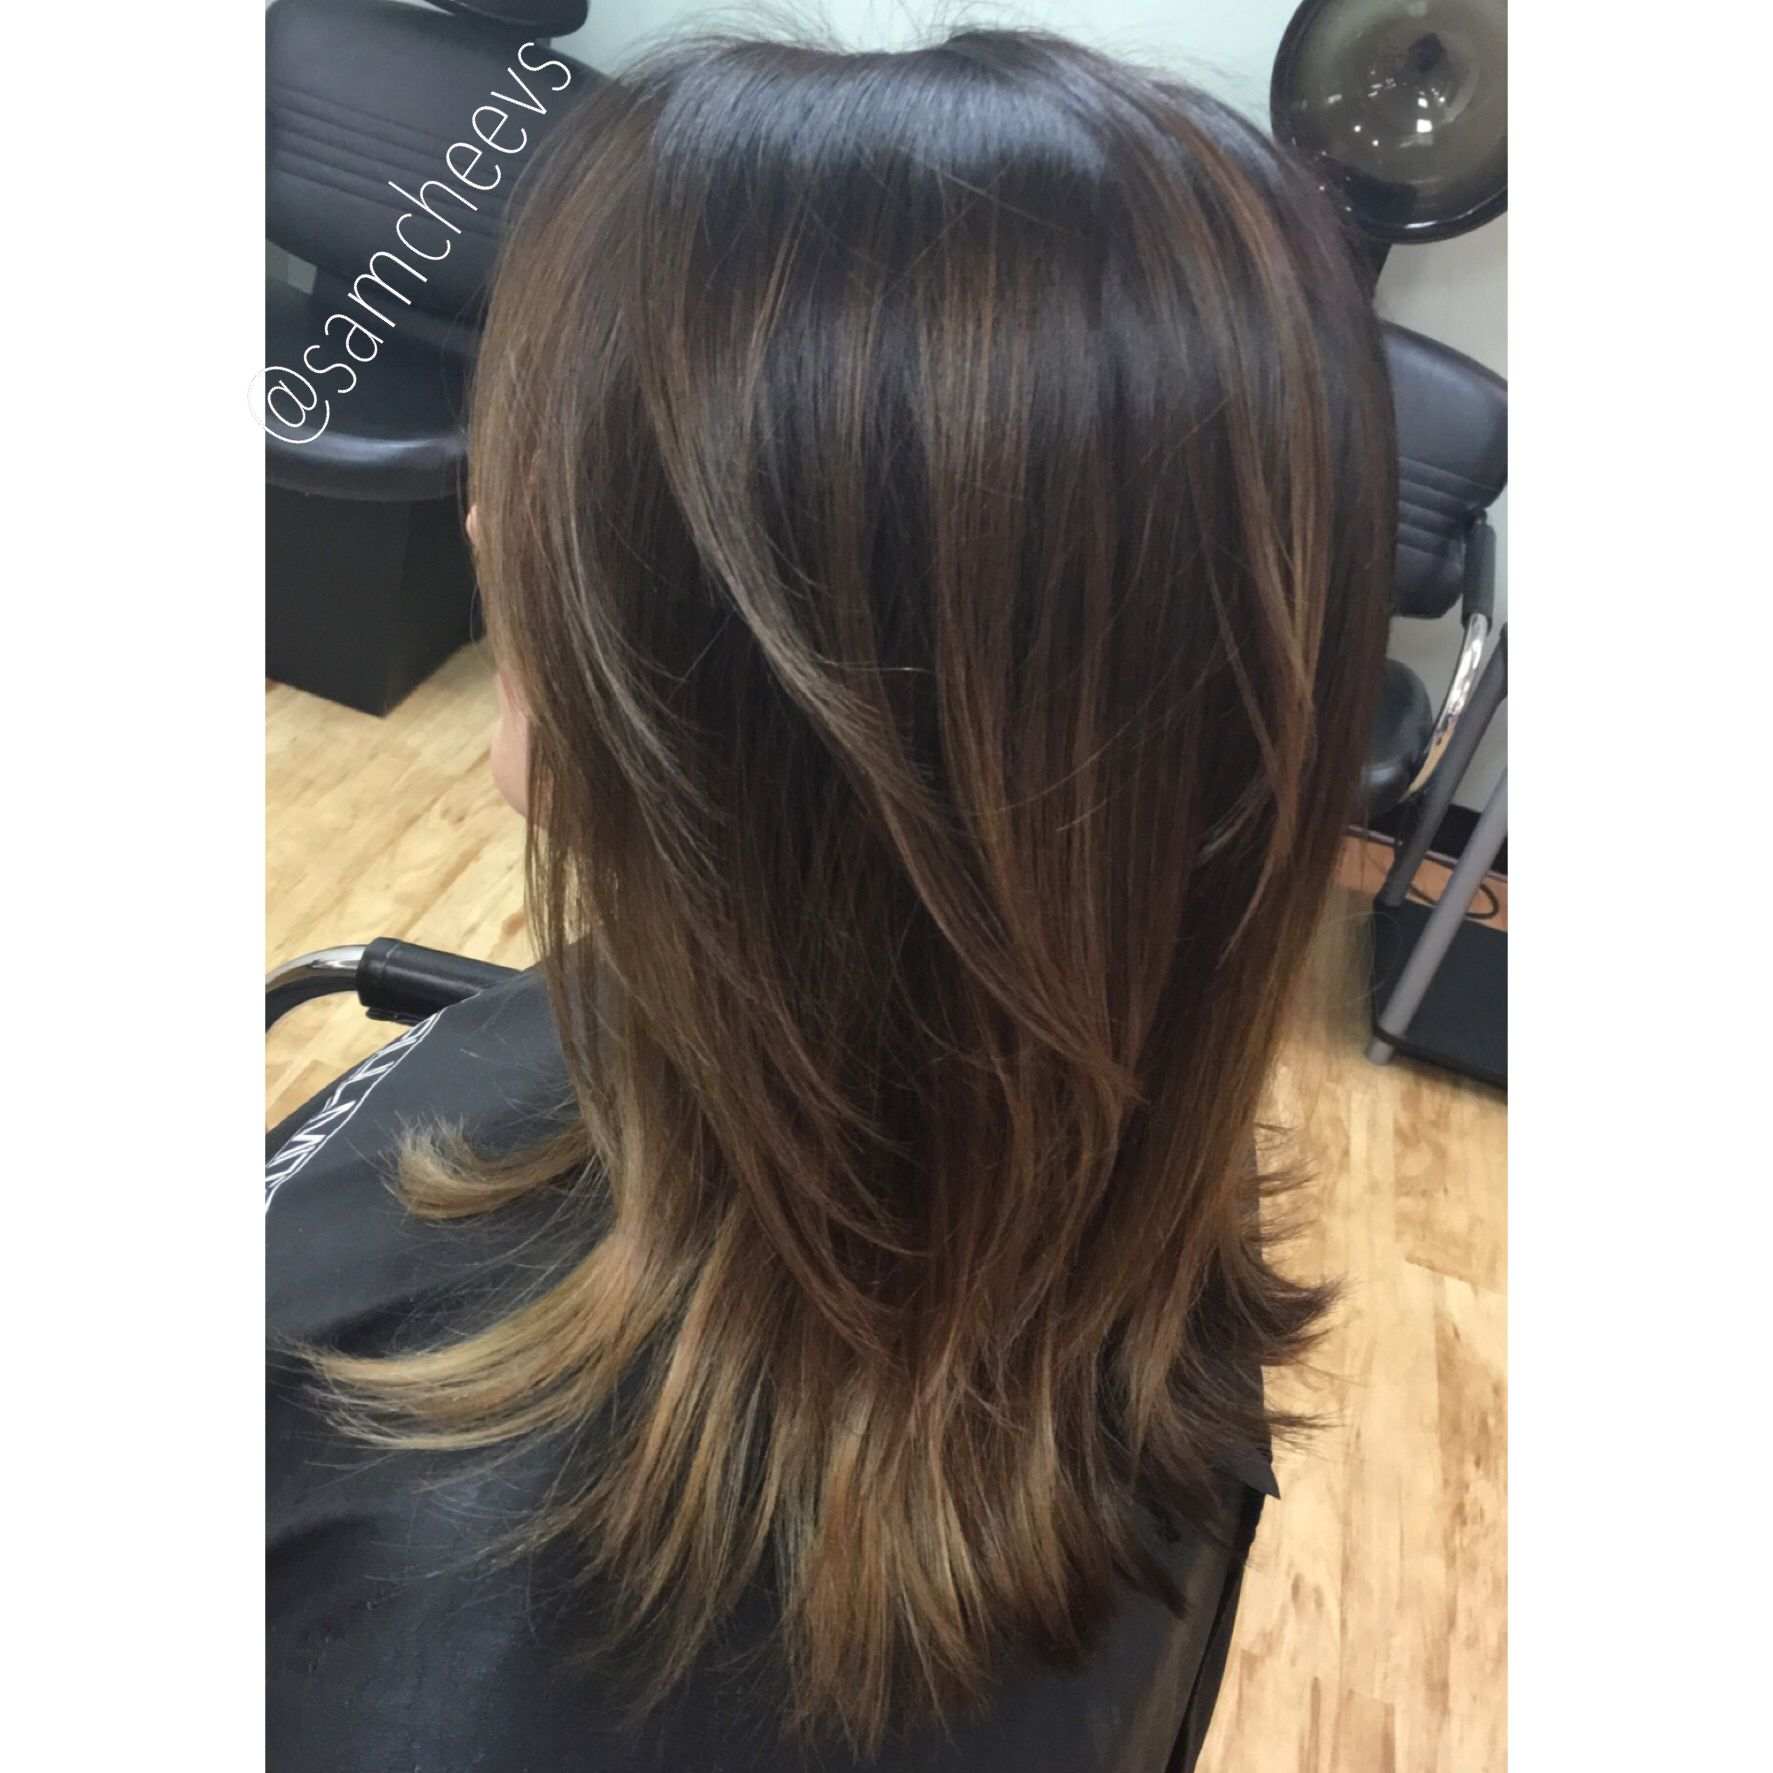 Medium Short Length Hair Cut With Layers Balayage Ombré Color On Brown